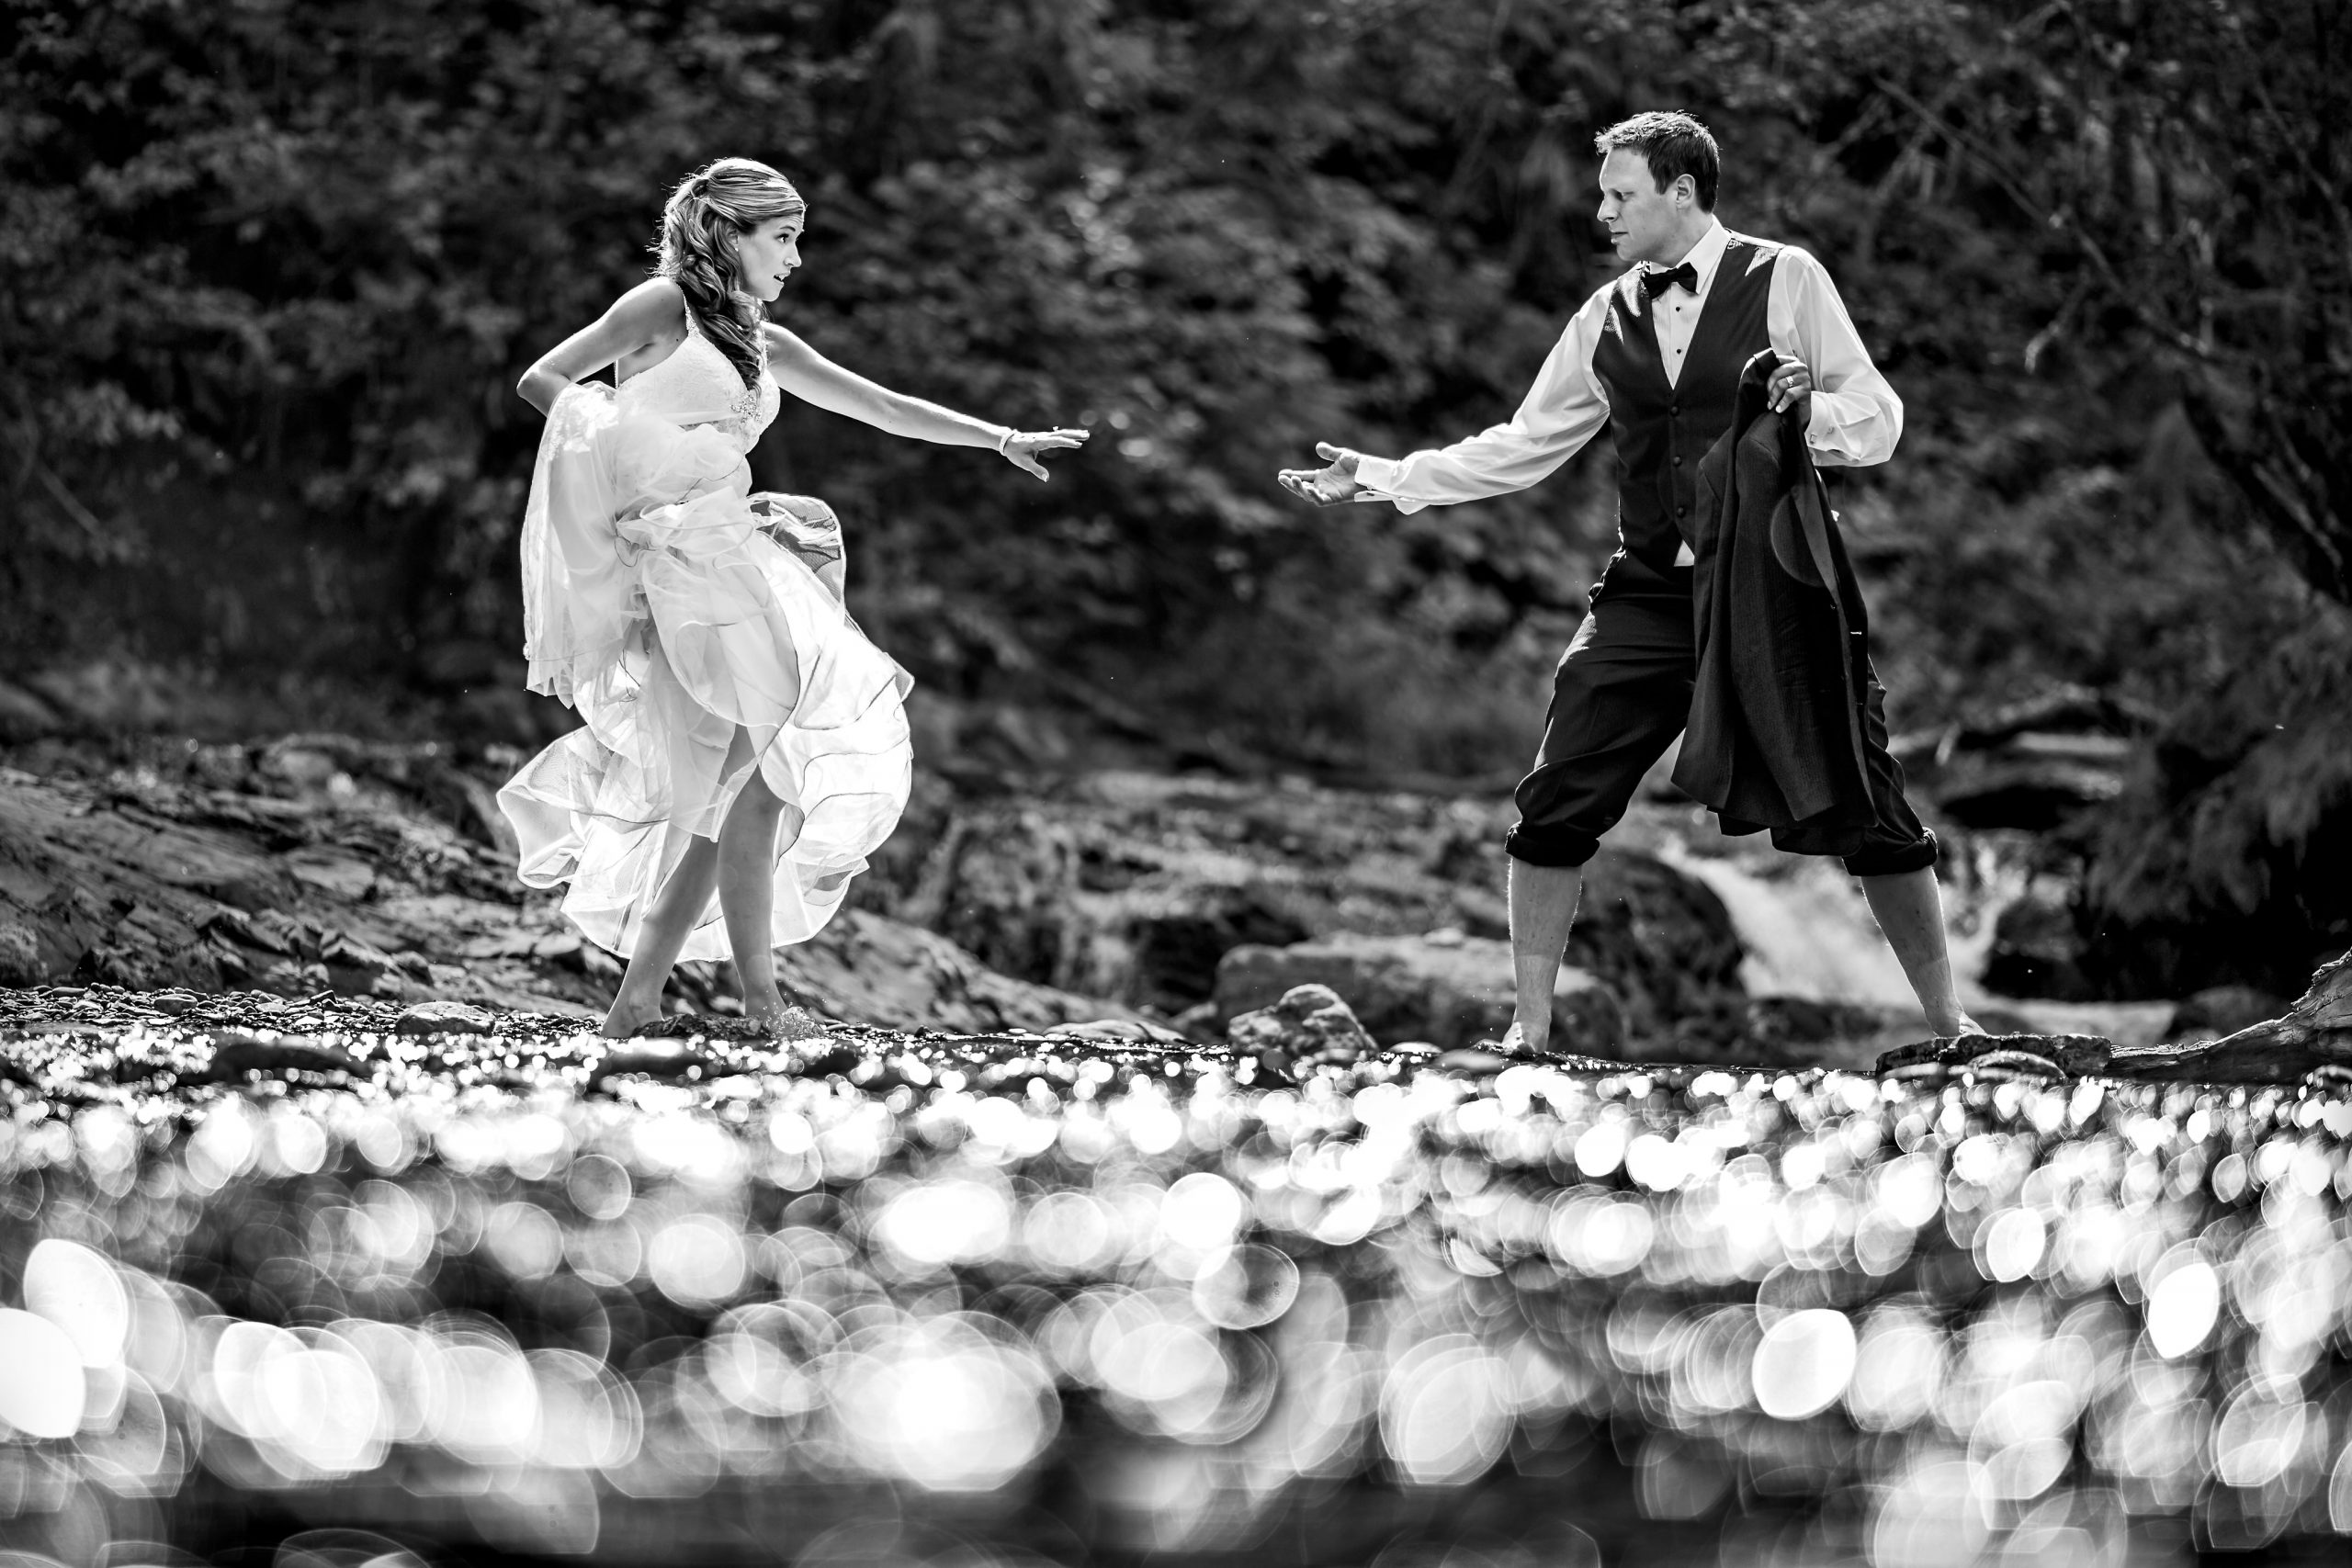 Groom with rolled up pants holds his hand out to help bride cross a stream